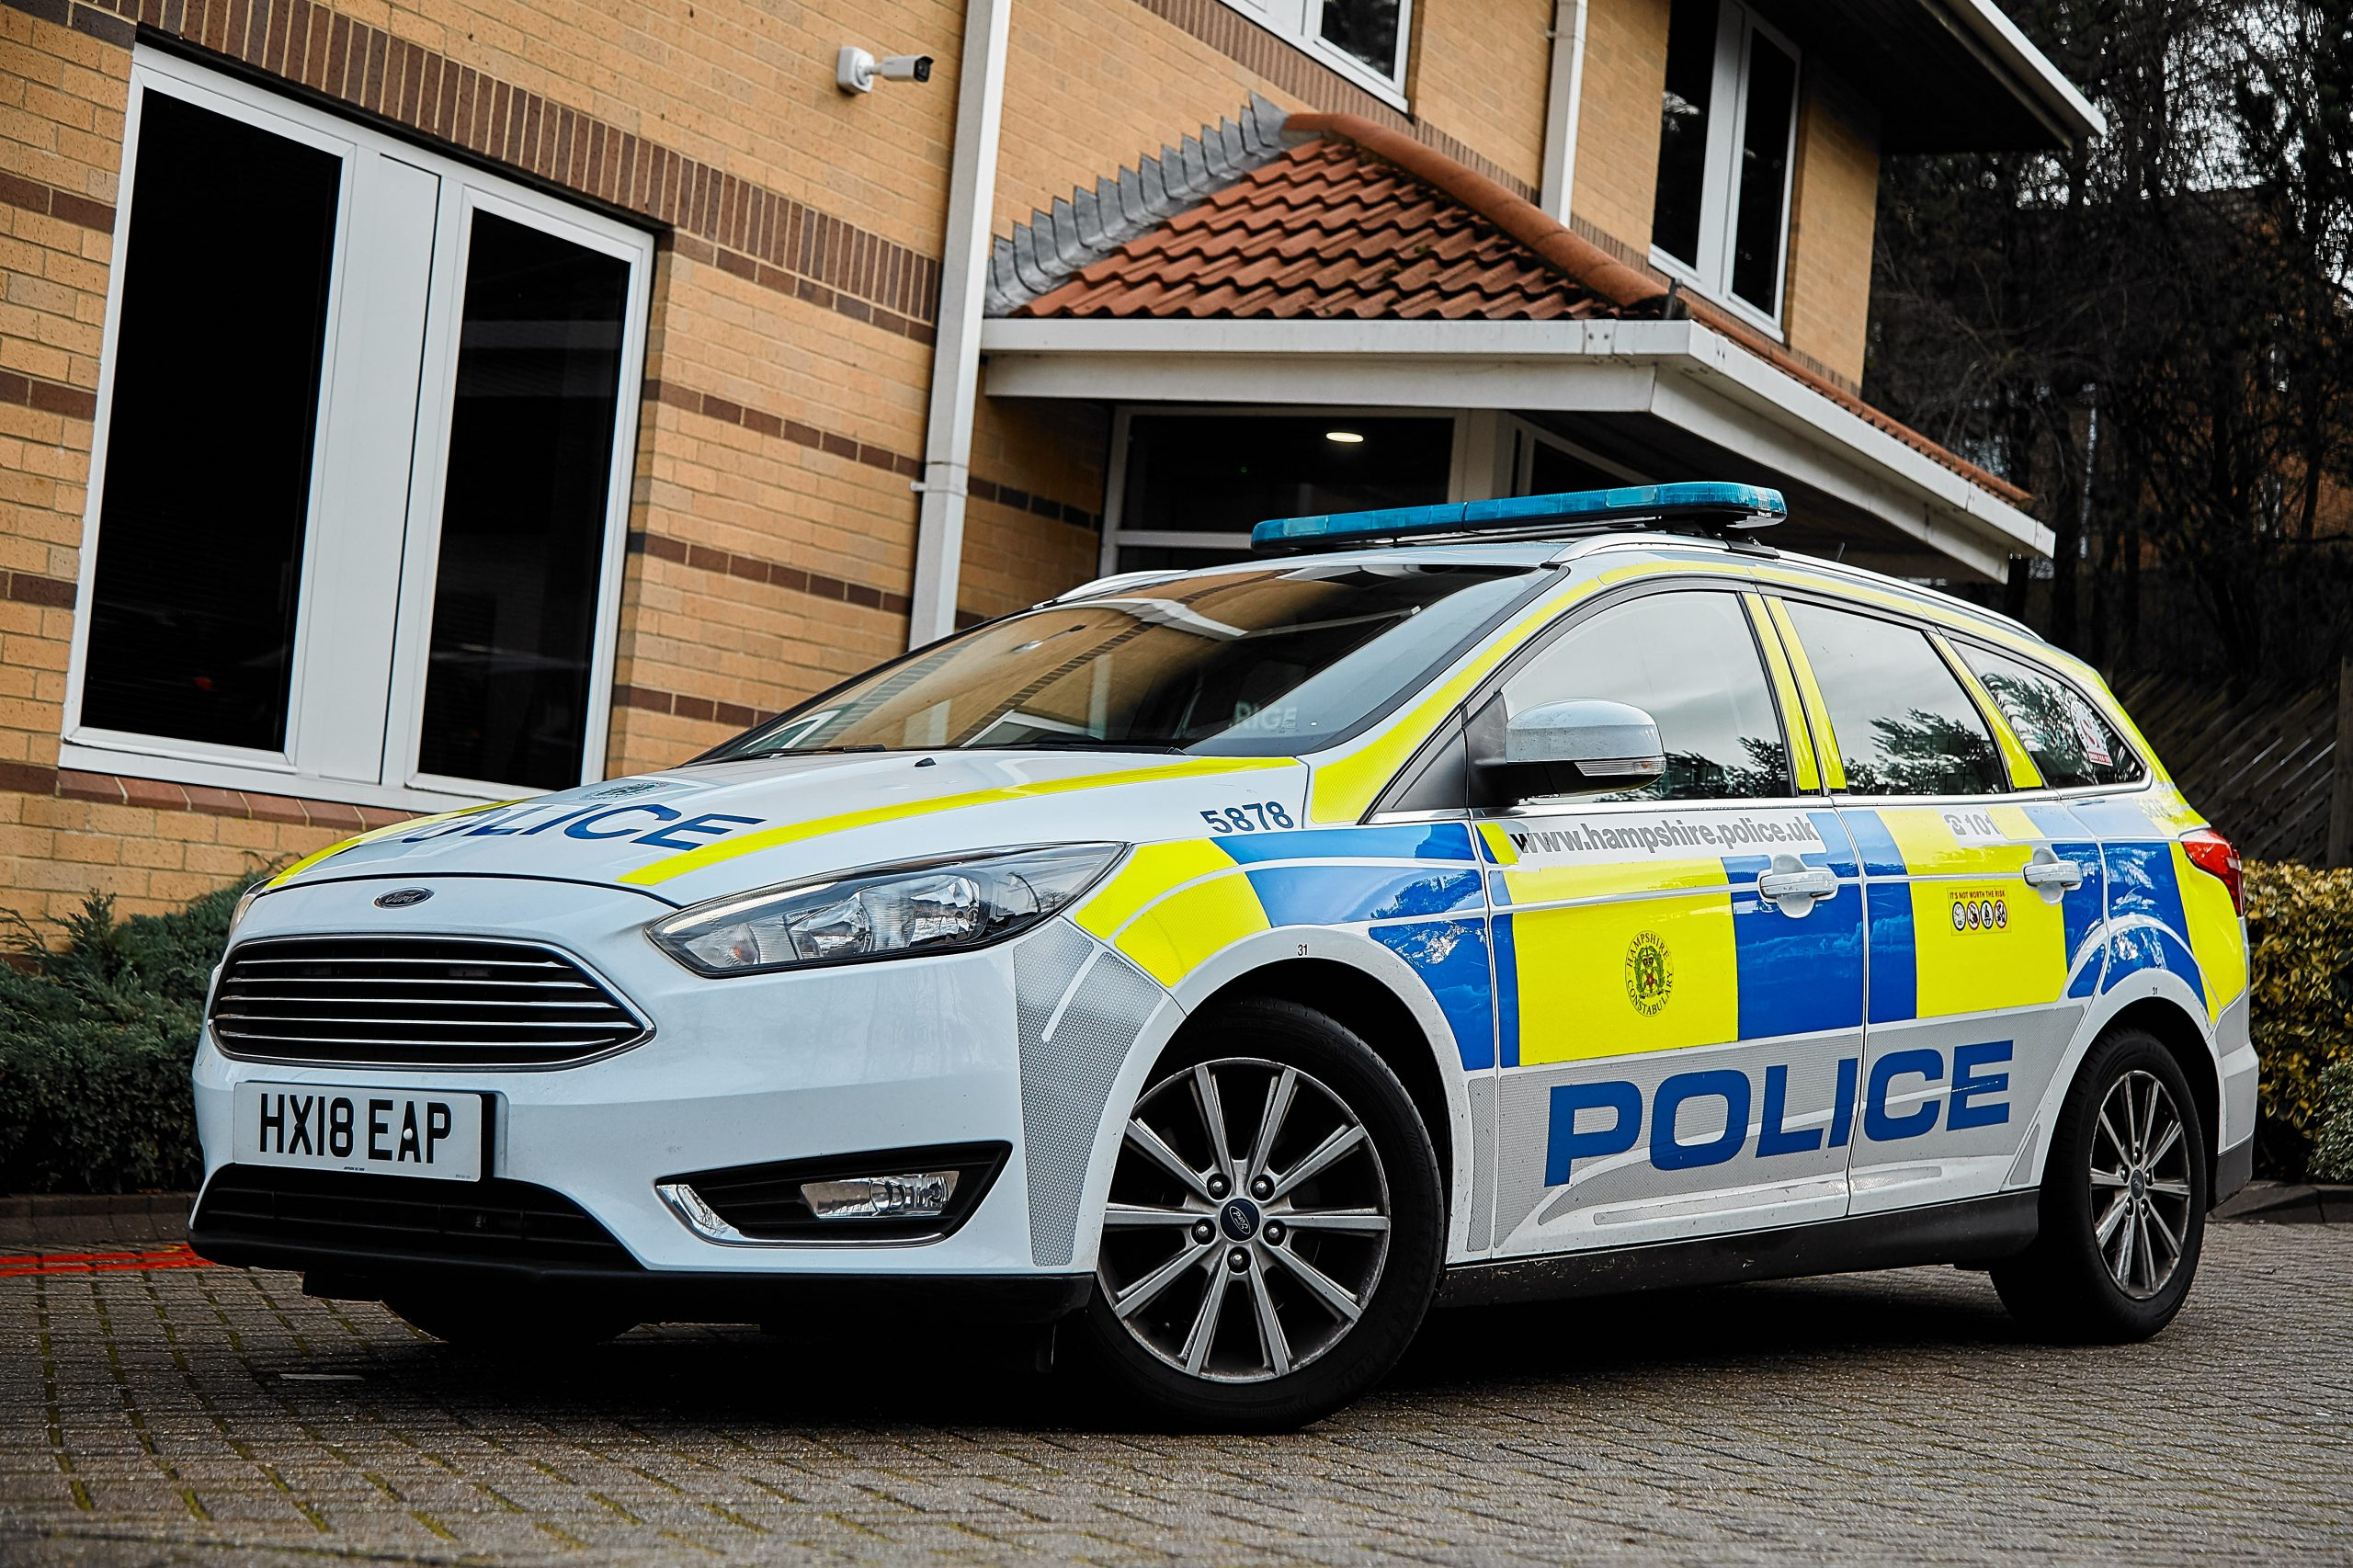 One in four roads policing officers needed medical help after work-related violence